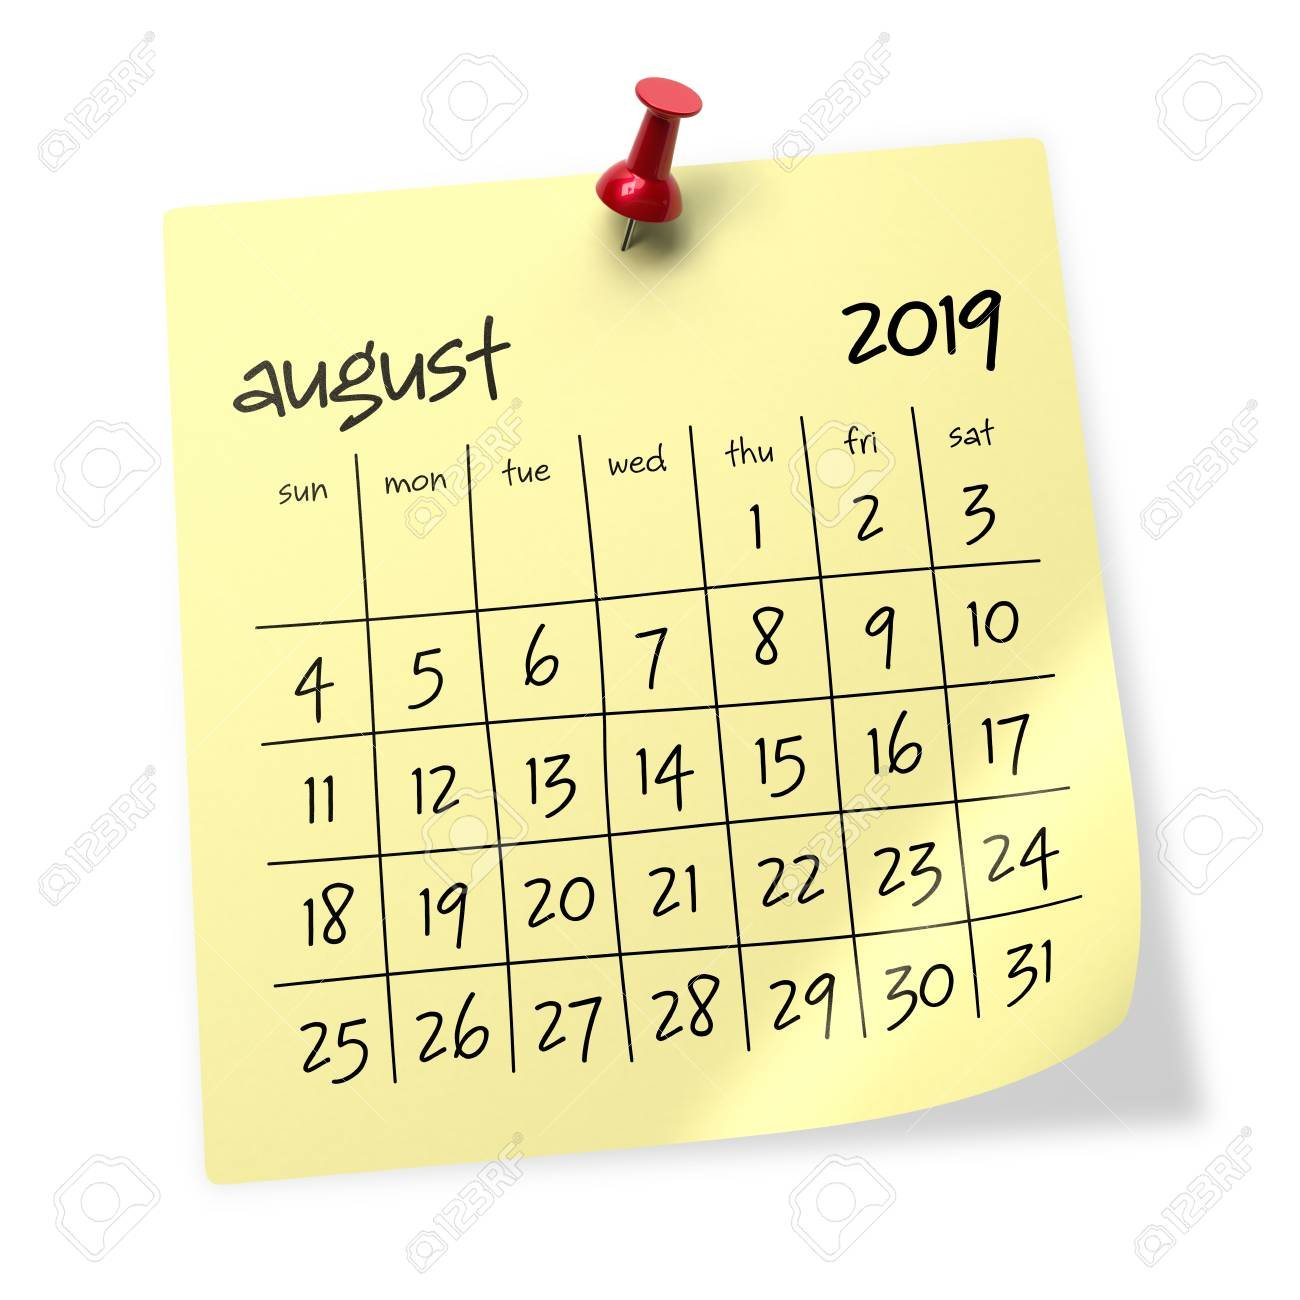 August 2019 Calendar. Isolated On White Background. 3D Illustration August 3 2019 Calendar